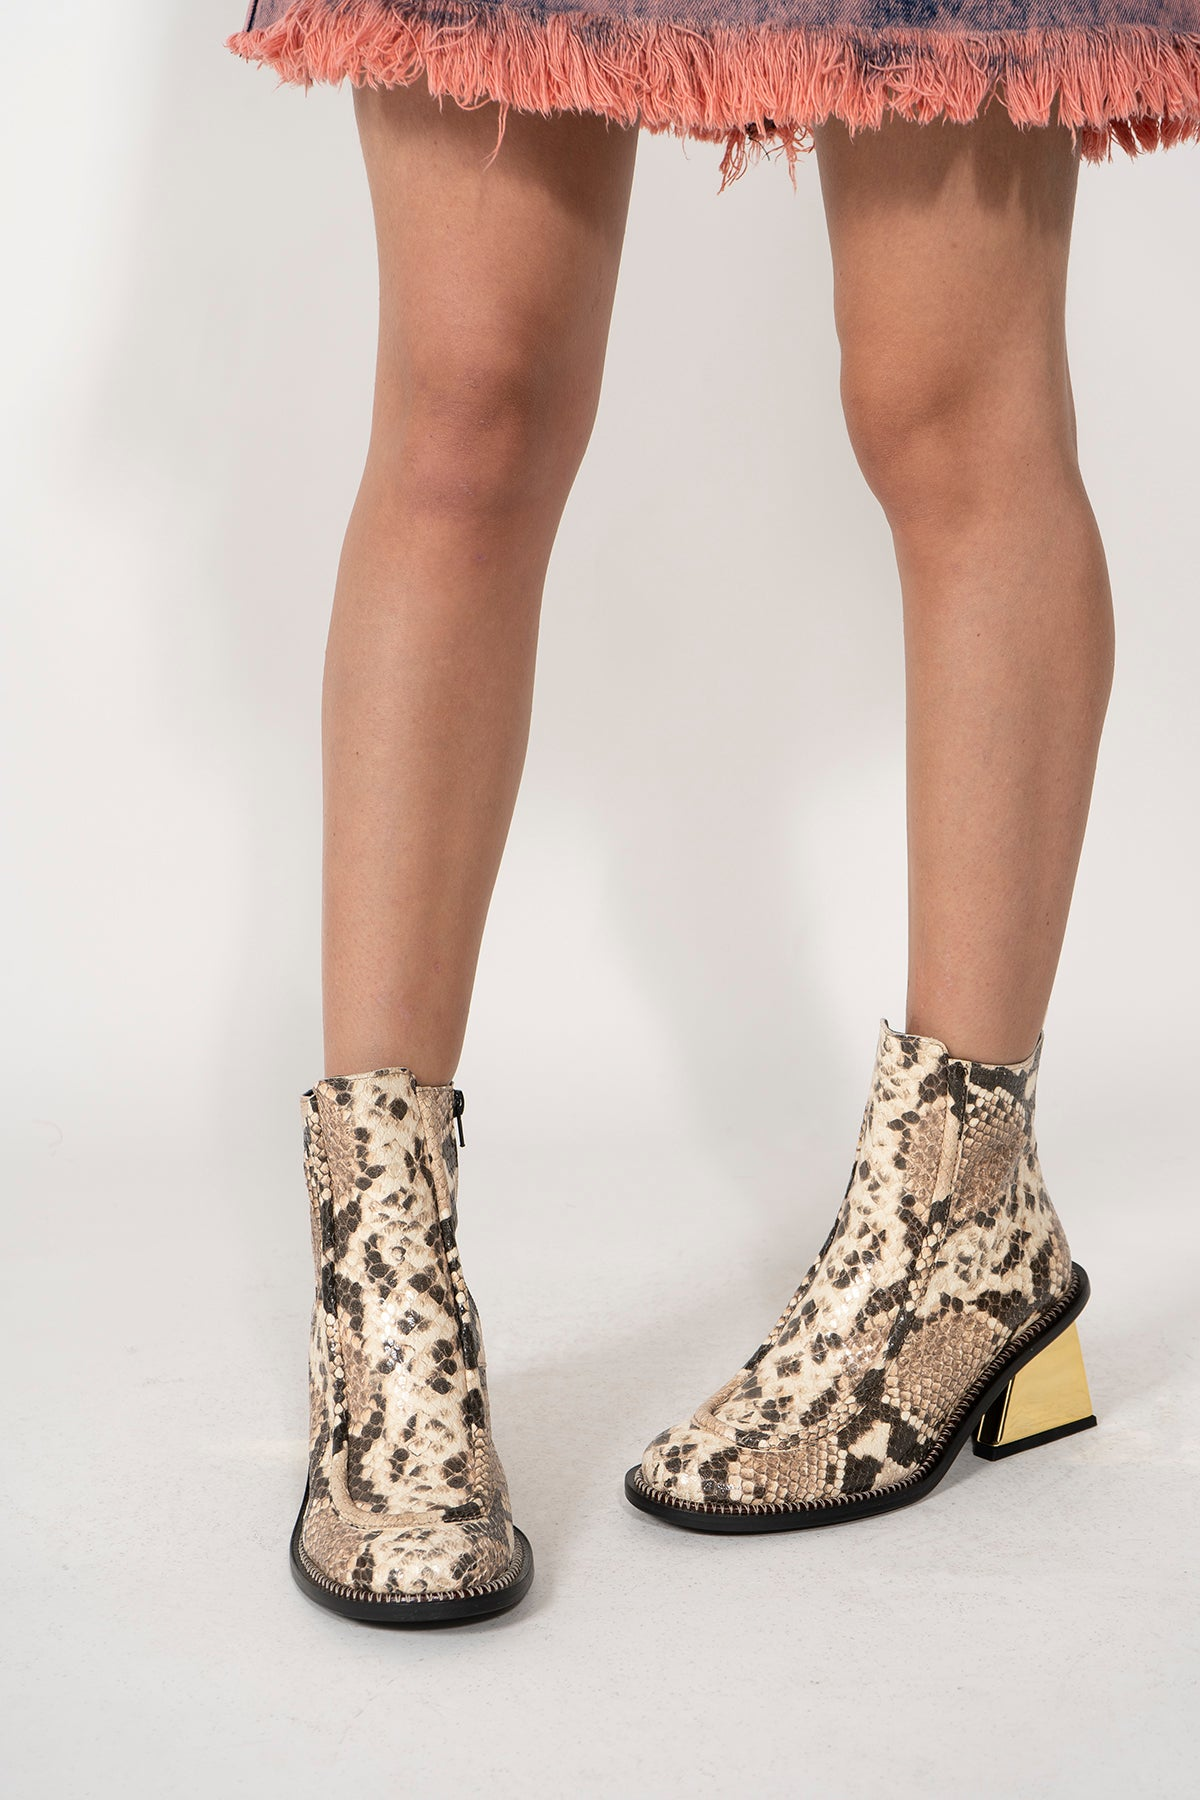 GOLD M'A HEEL SNAKE BOOTS IN BROWN